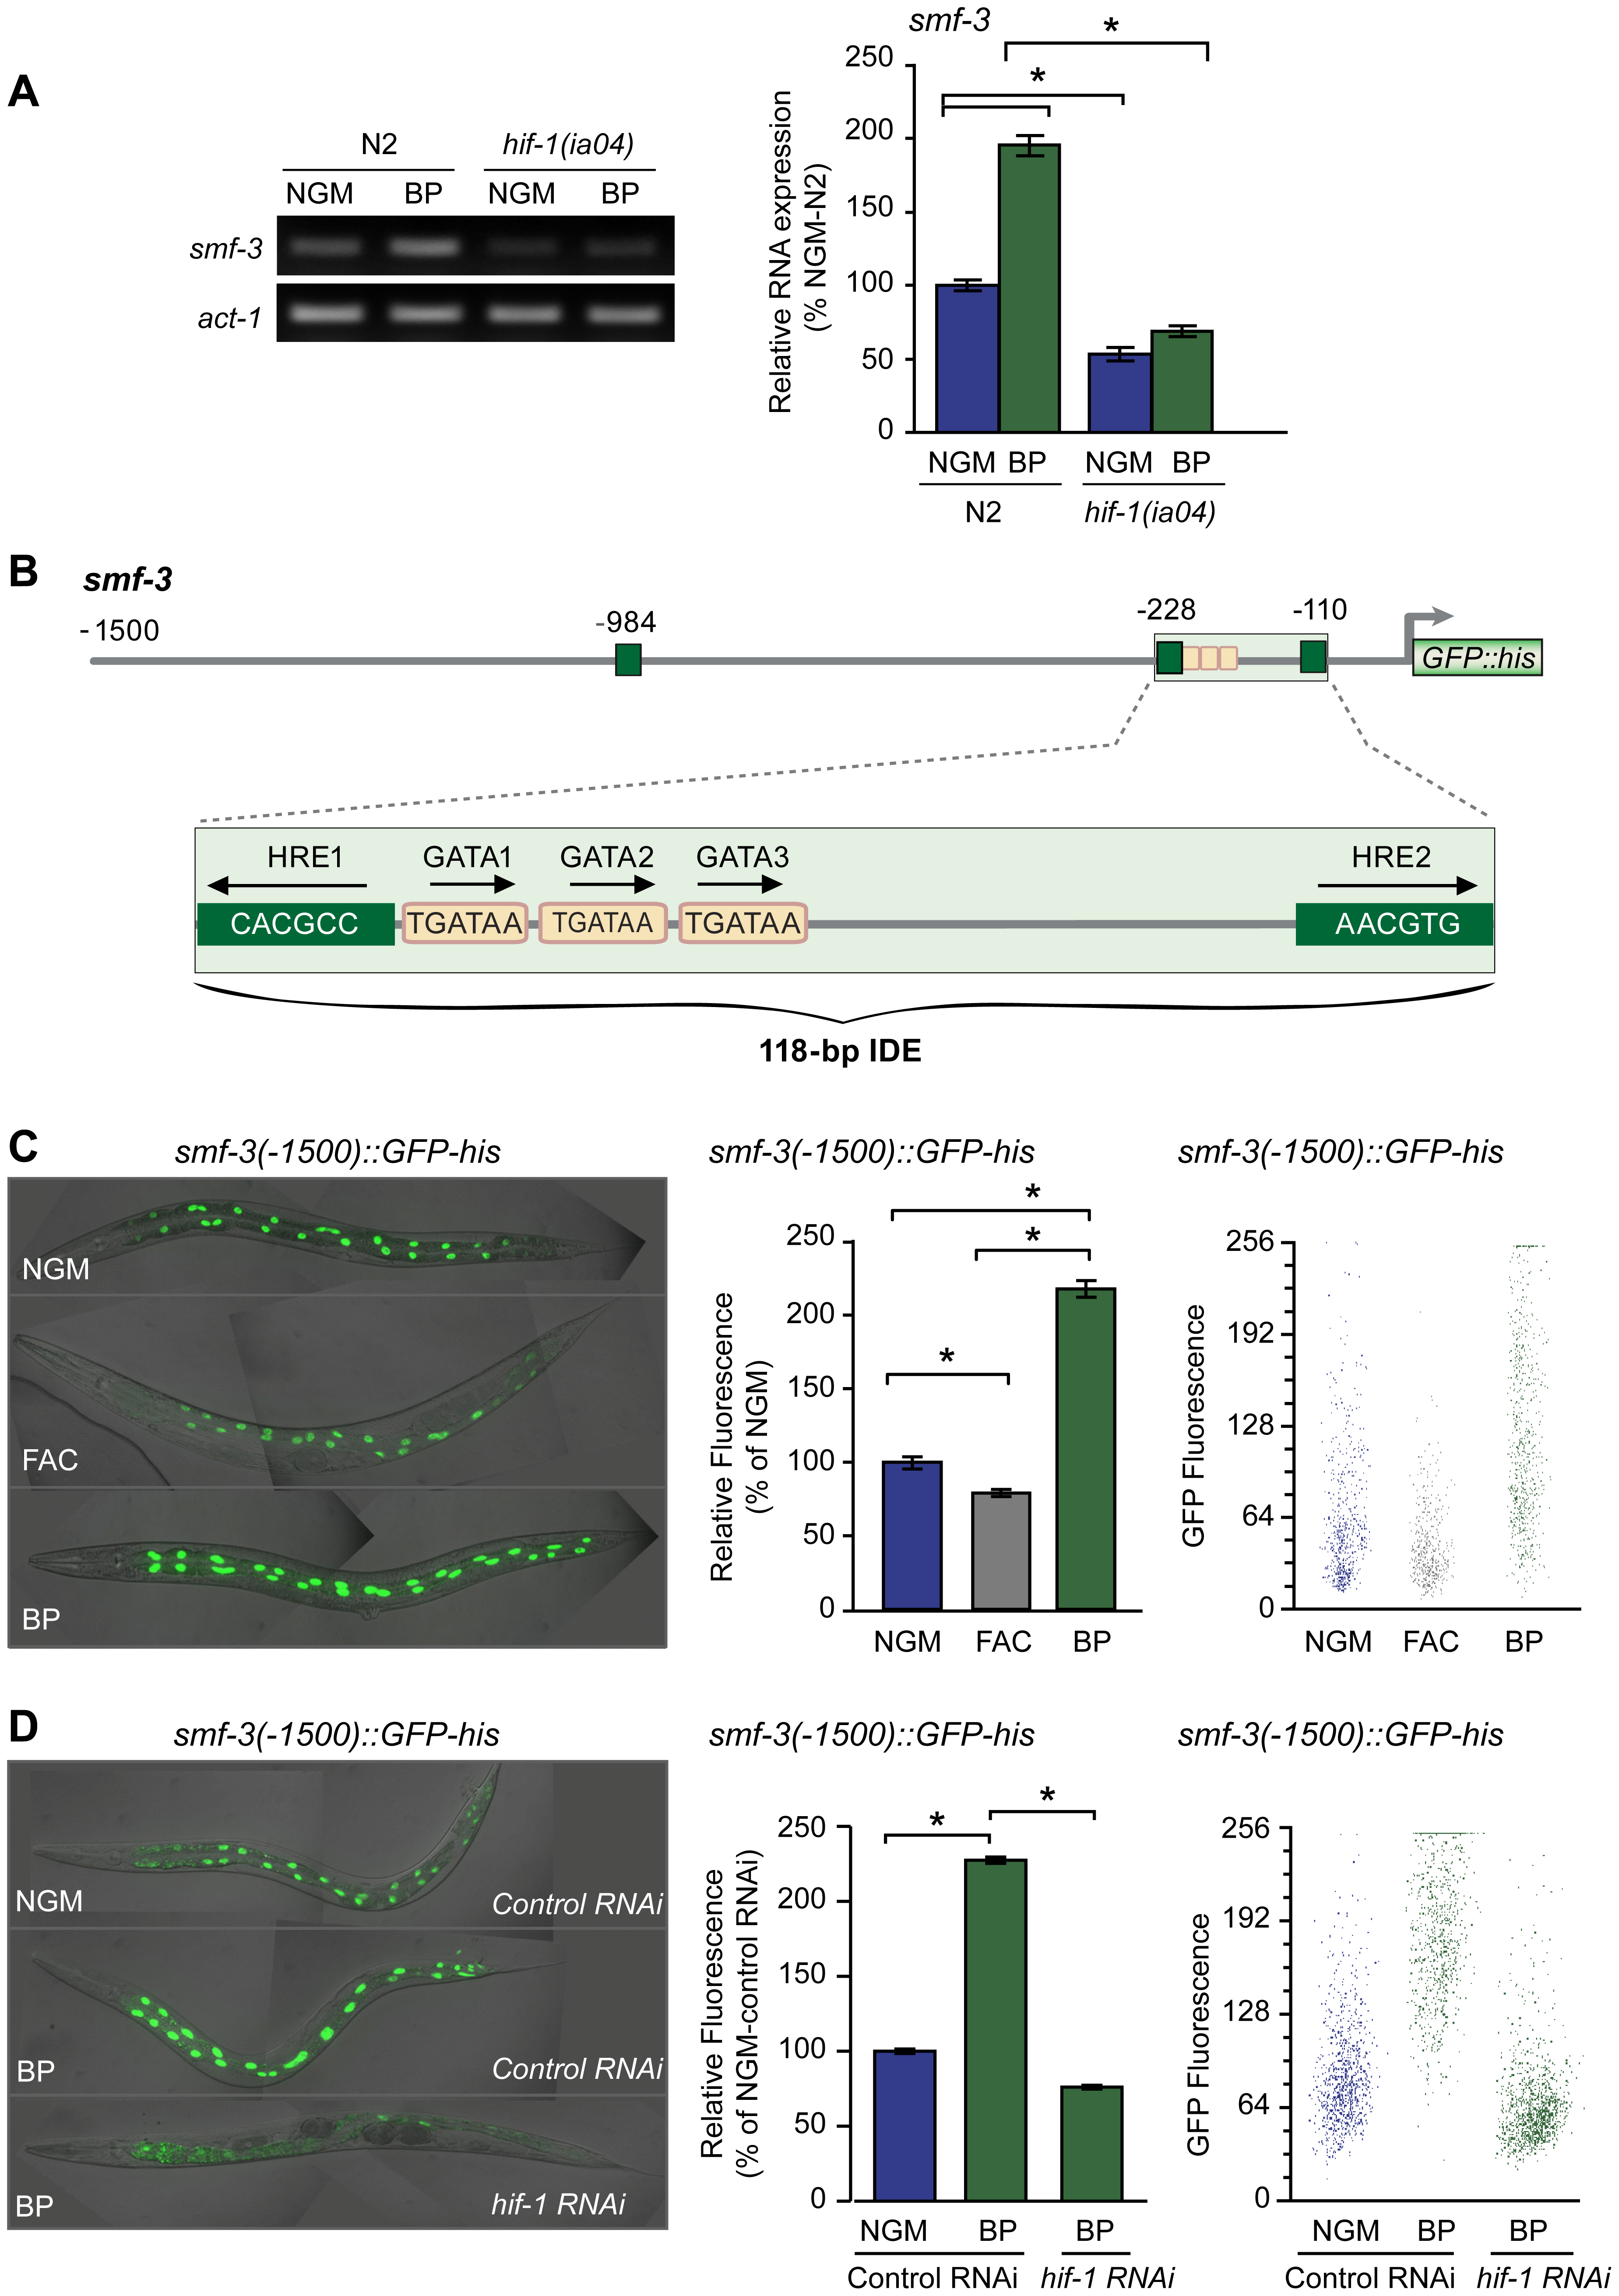 Activation of <i>smf-3</i> during iron deficiency is dependent on an IDE in the <i>smf-3</i> promoter.